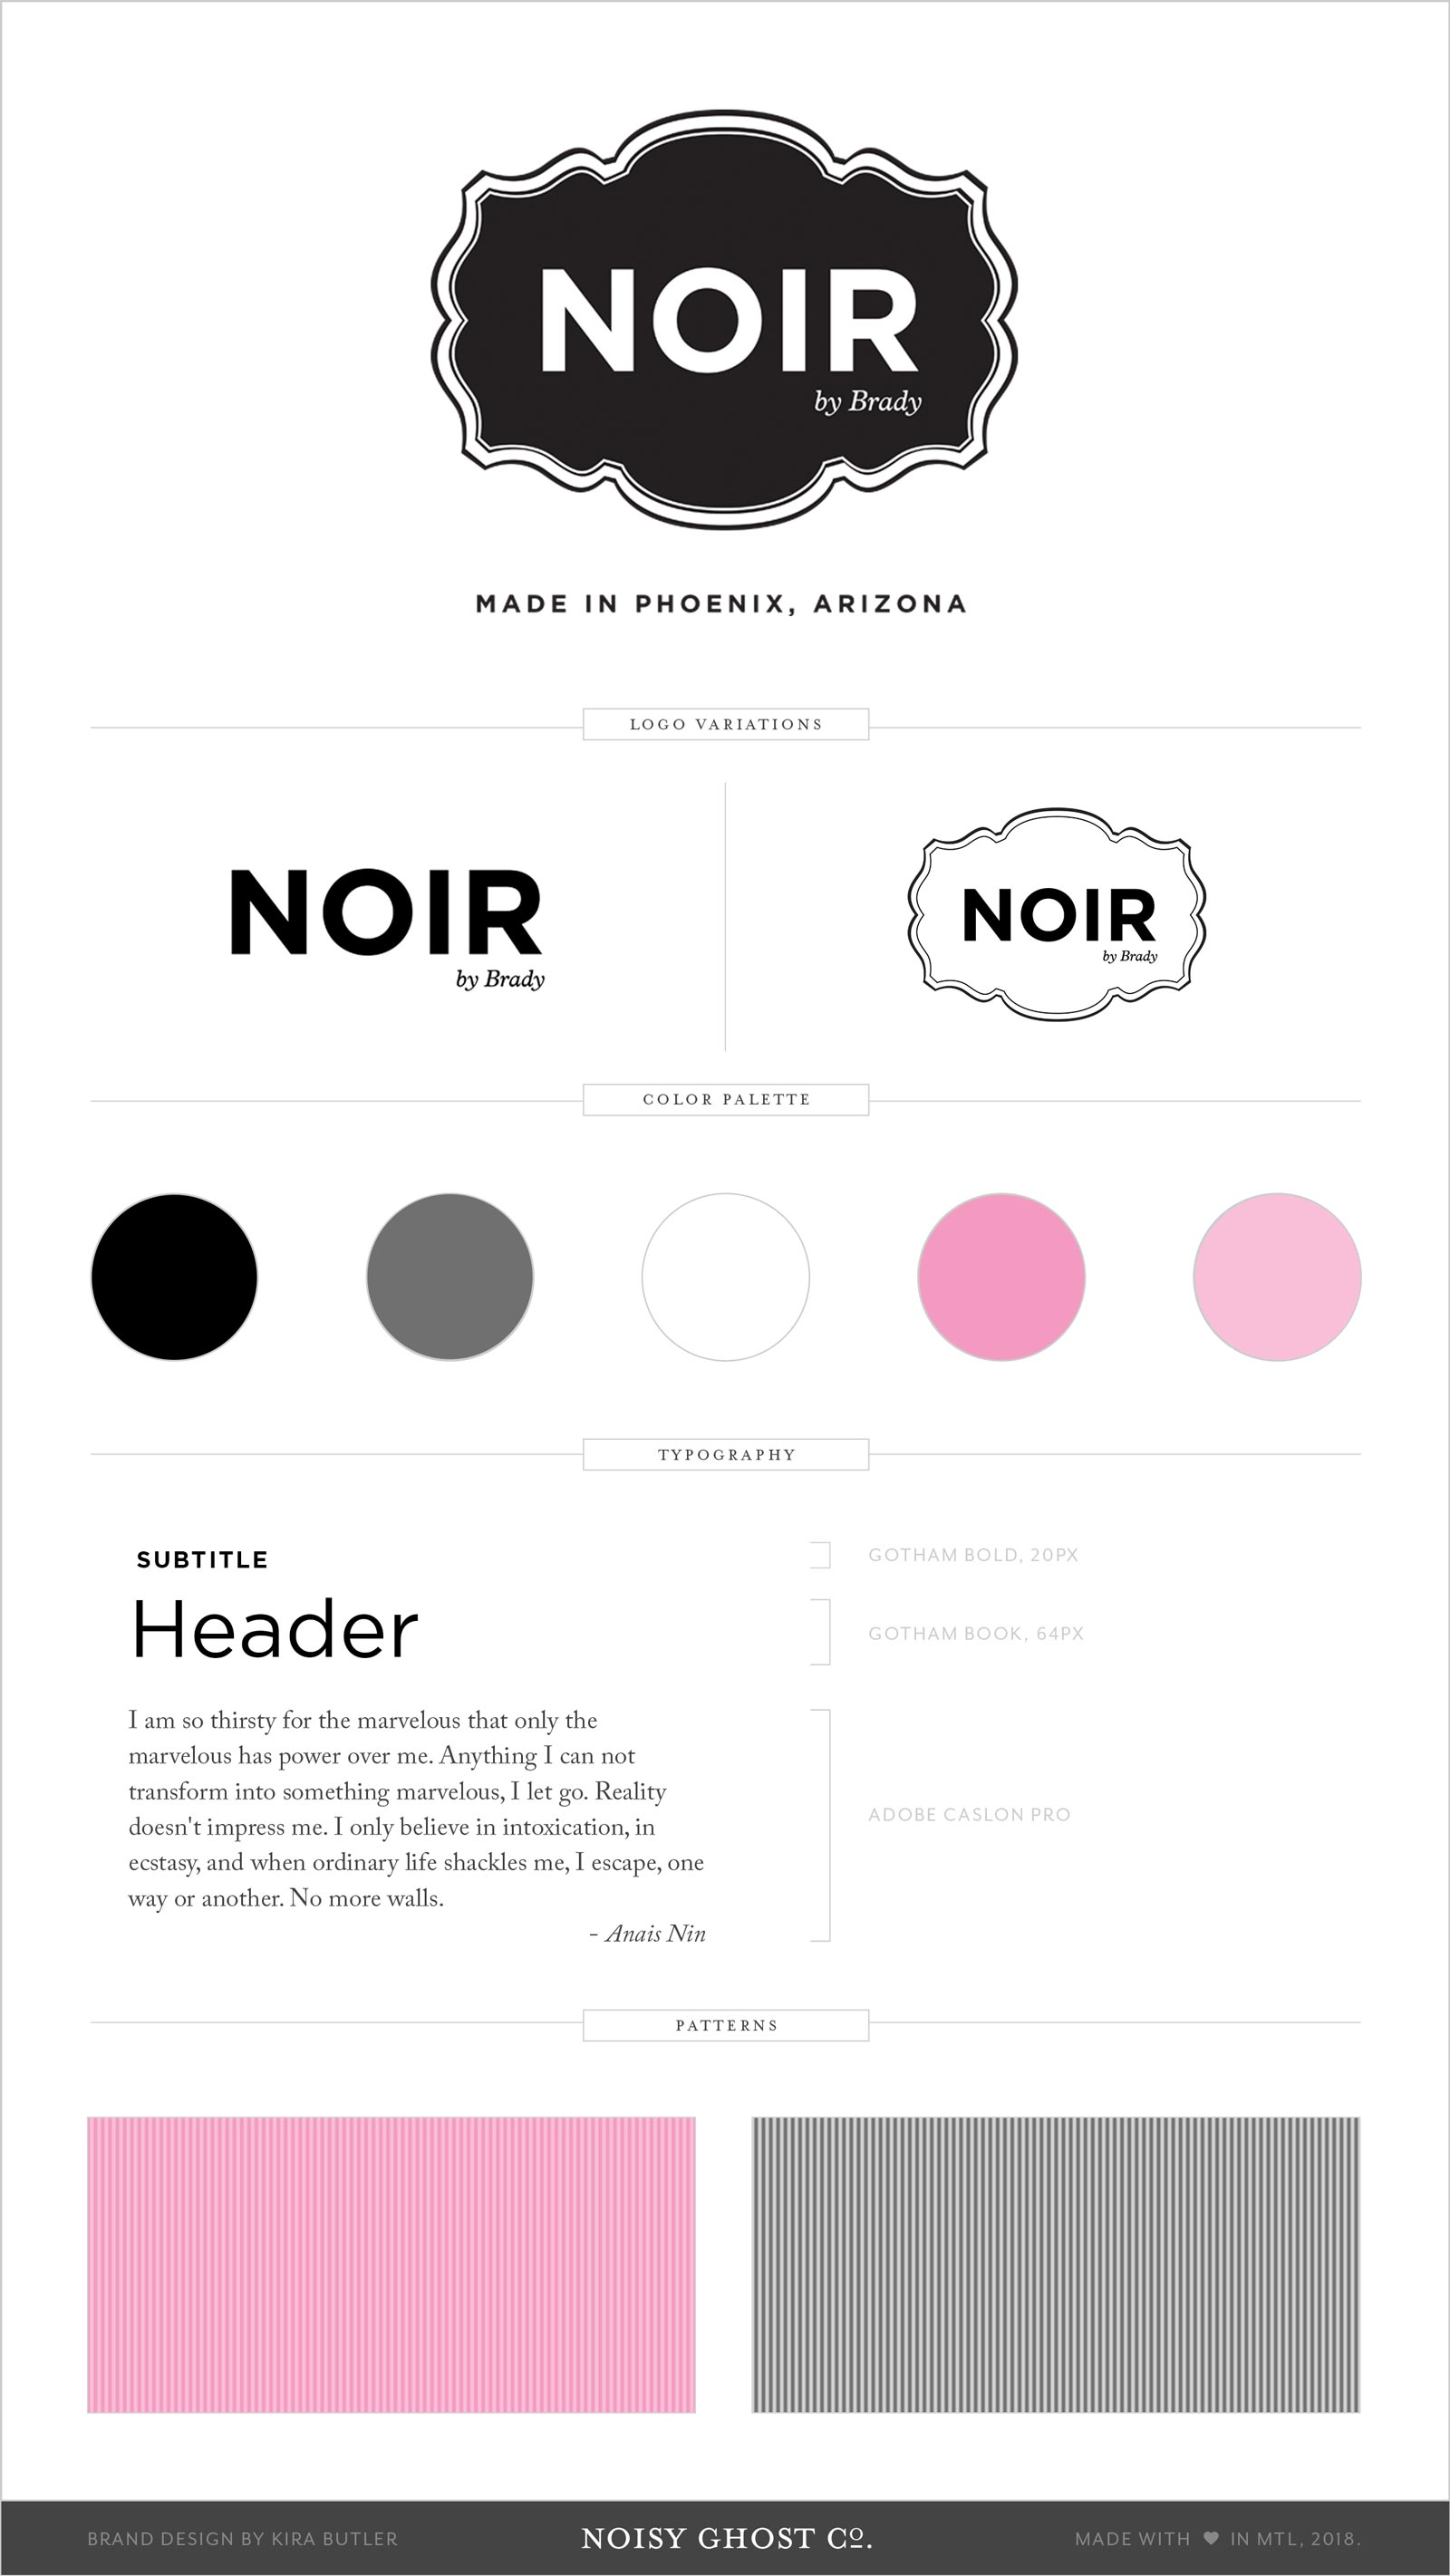 Brand and identity design for Noir by Brady, by Noisy Ghost Co.